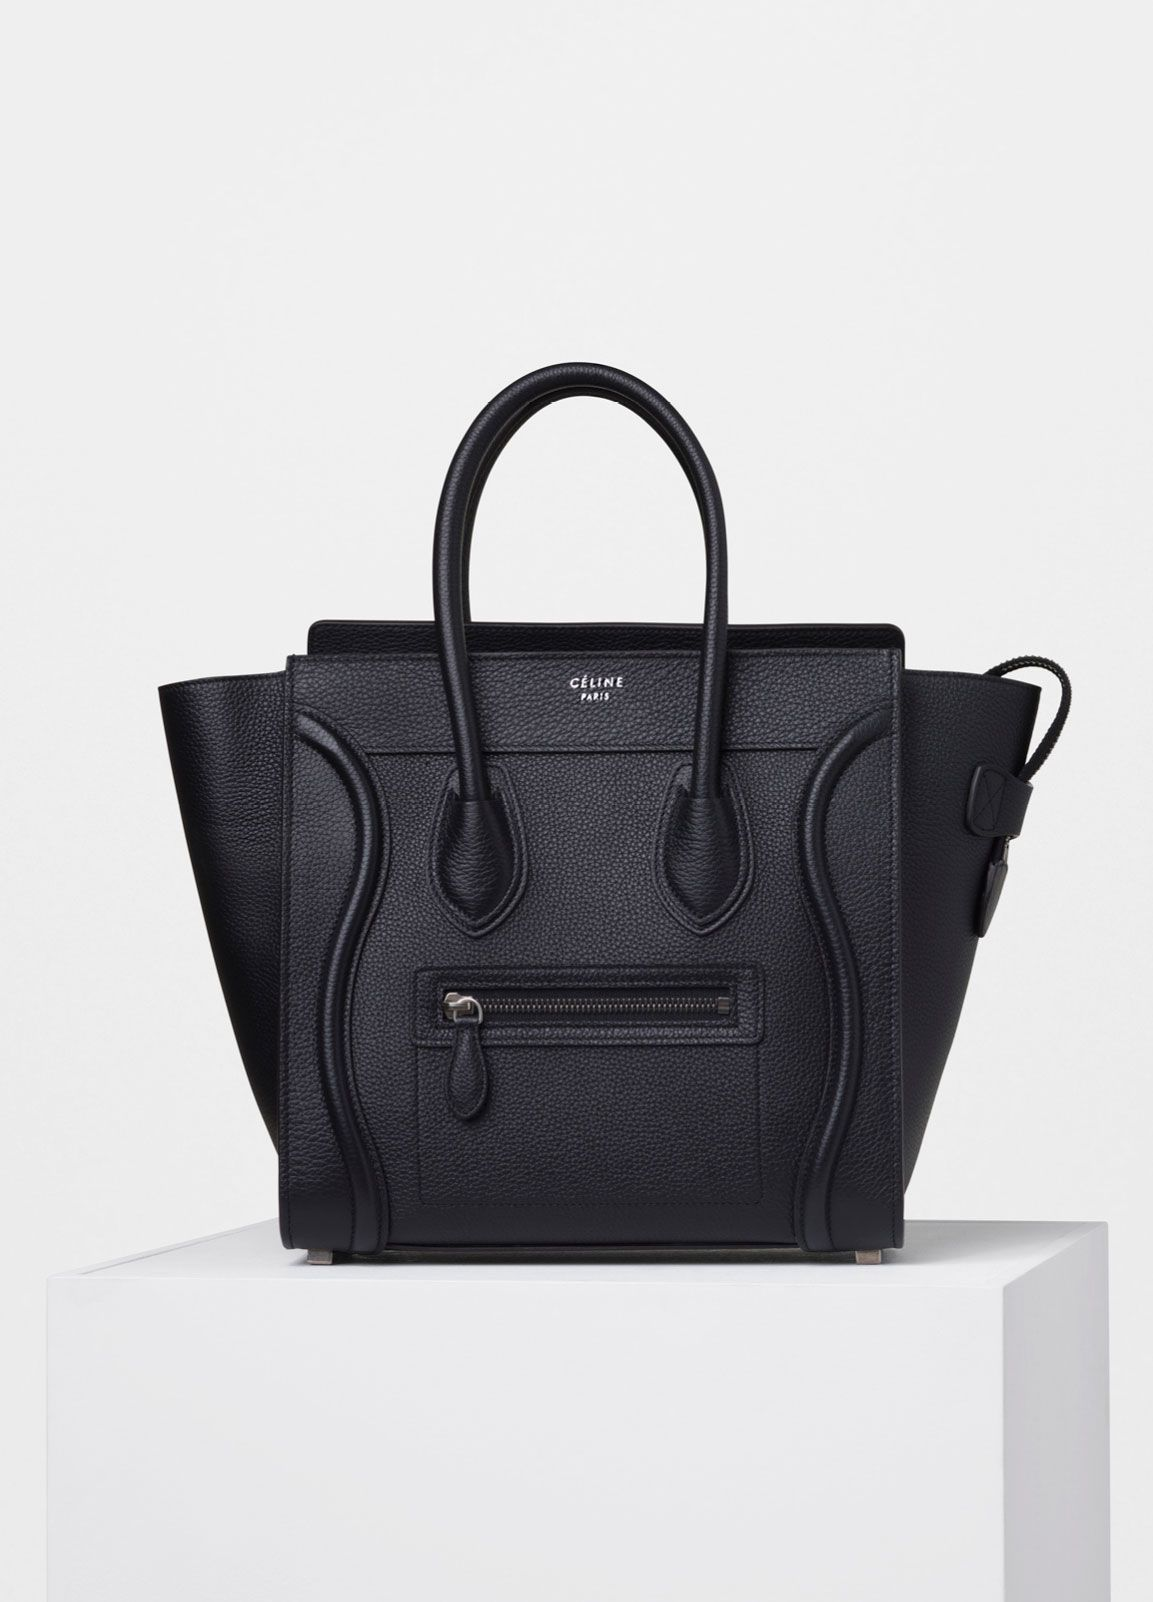 Micro Luggage Handbag In Drummed Calfskin Spring Summer Collection 2017 CÉline